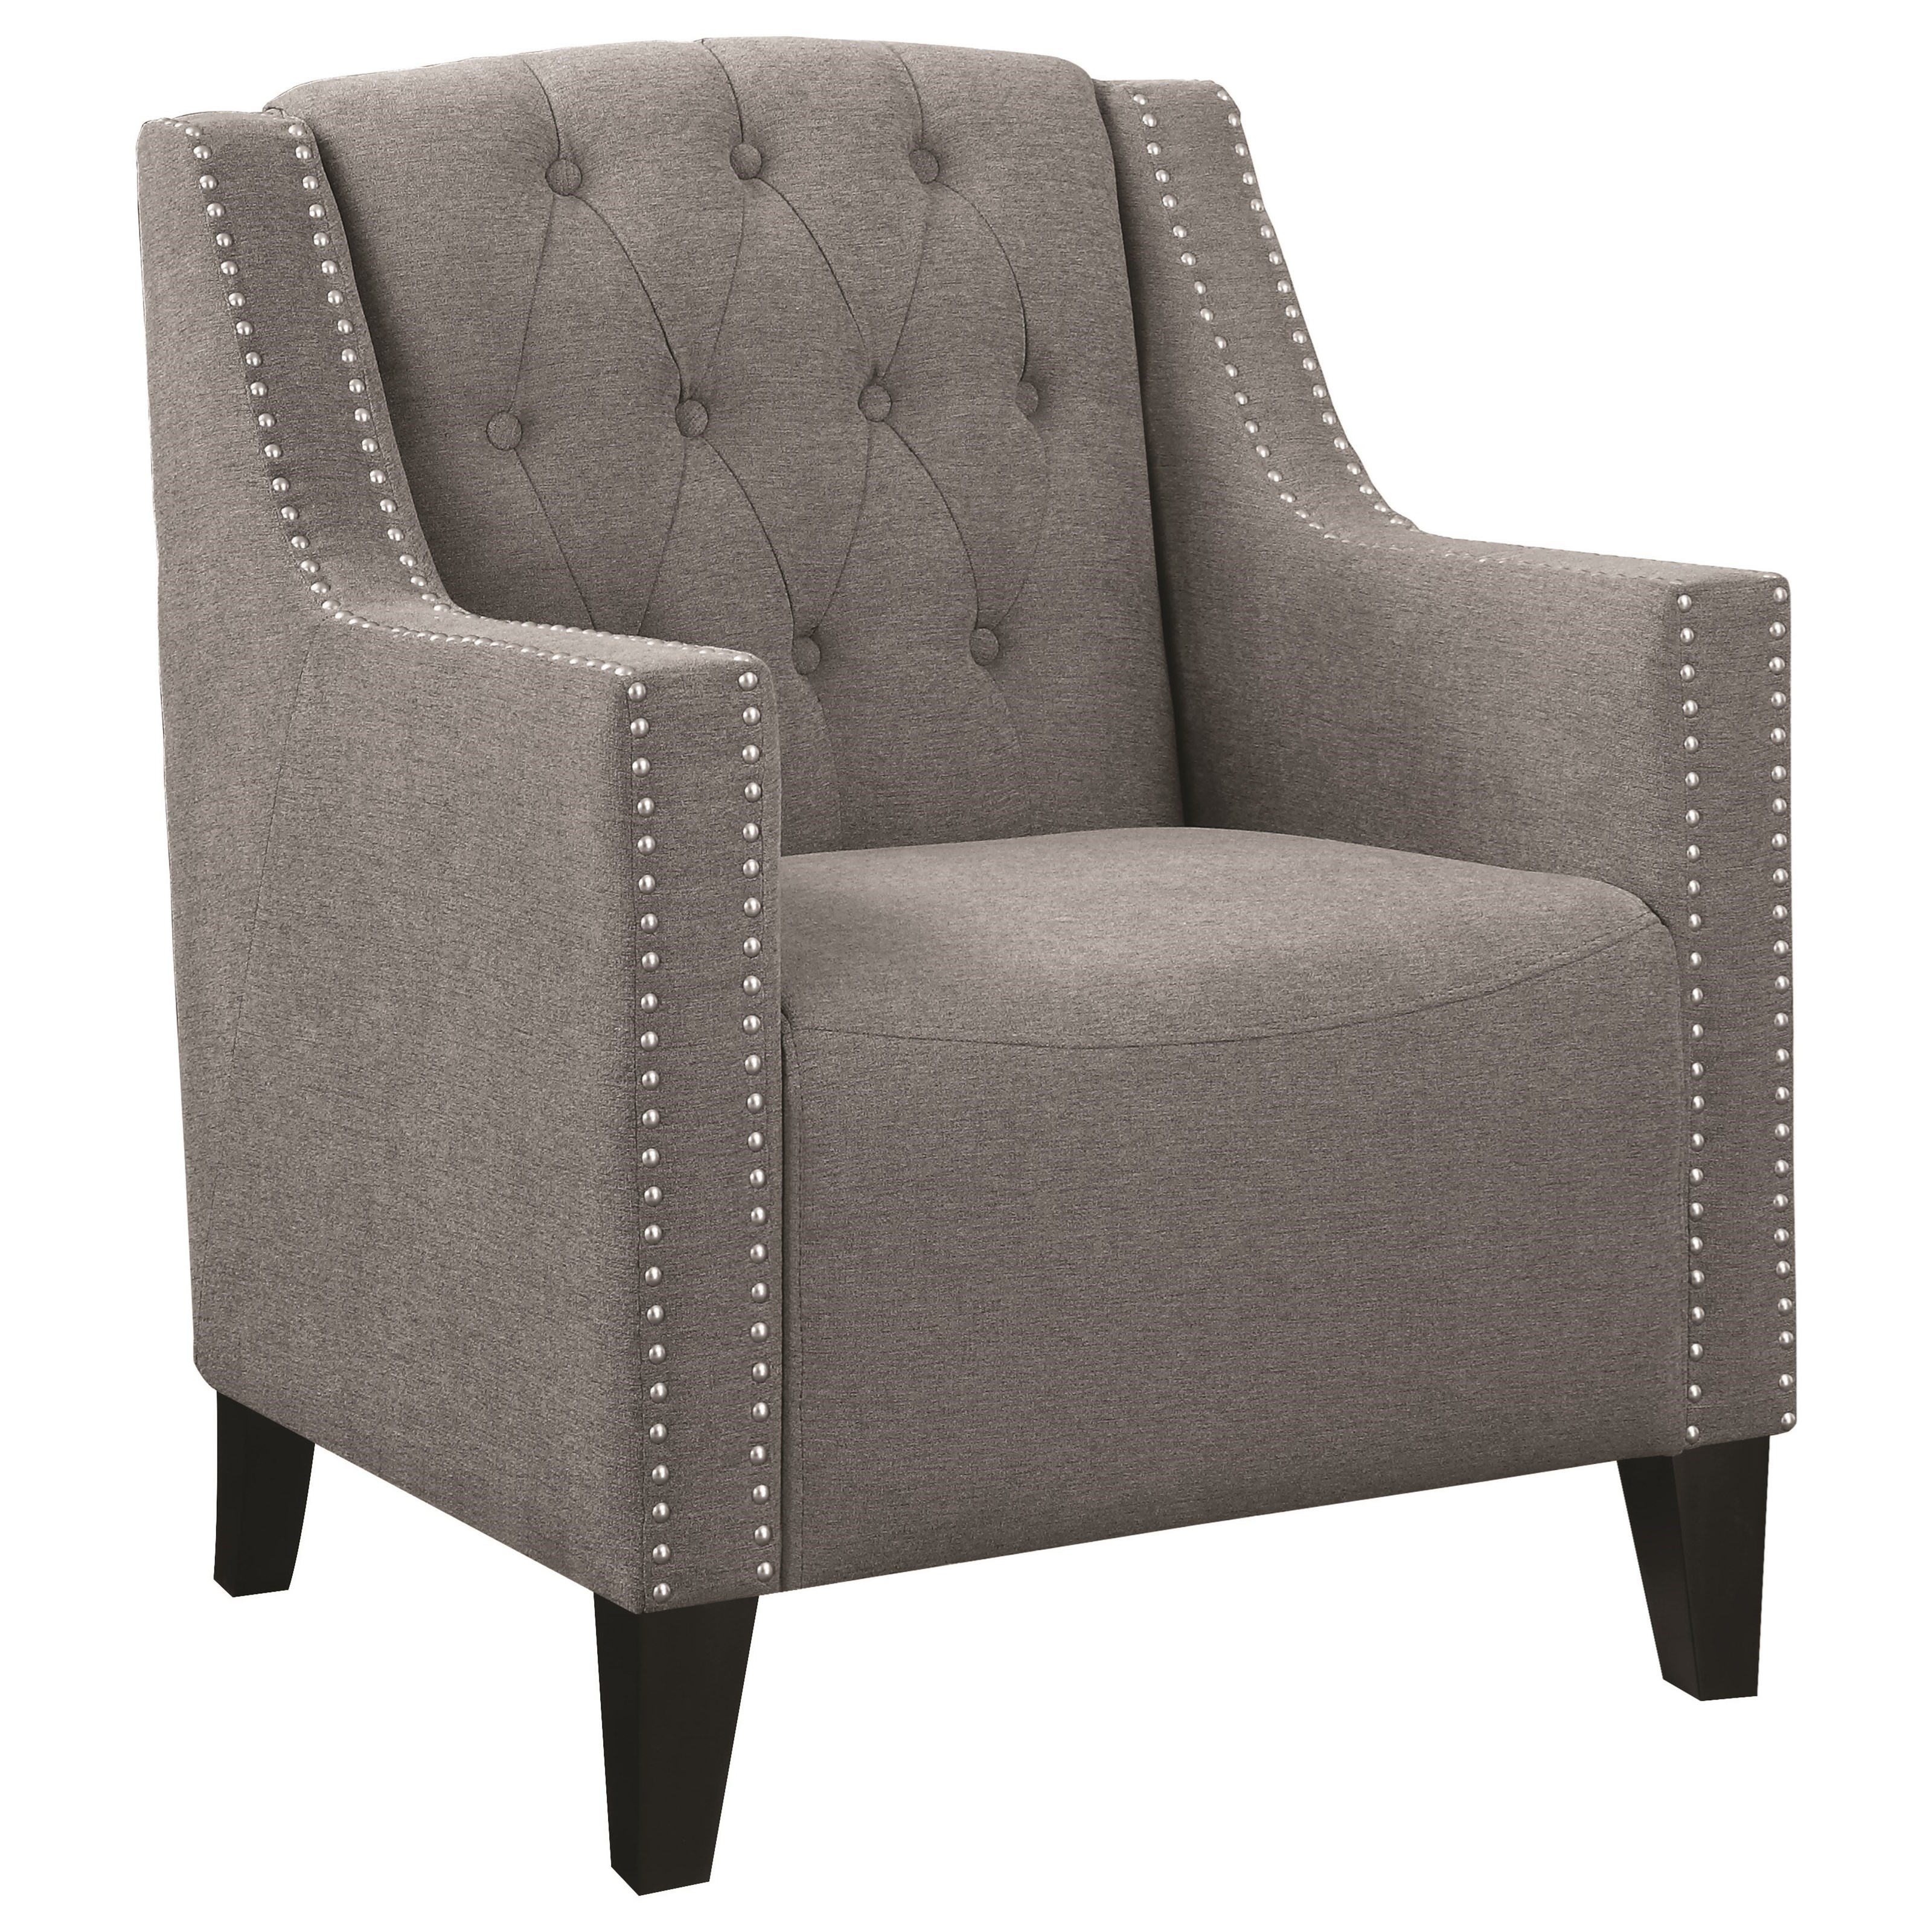 Coaster Accent Seating Accent Chair - Item Number: 902289